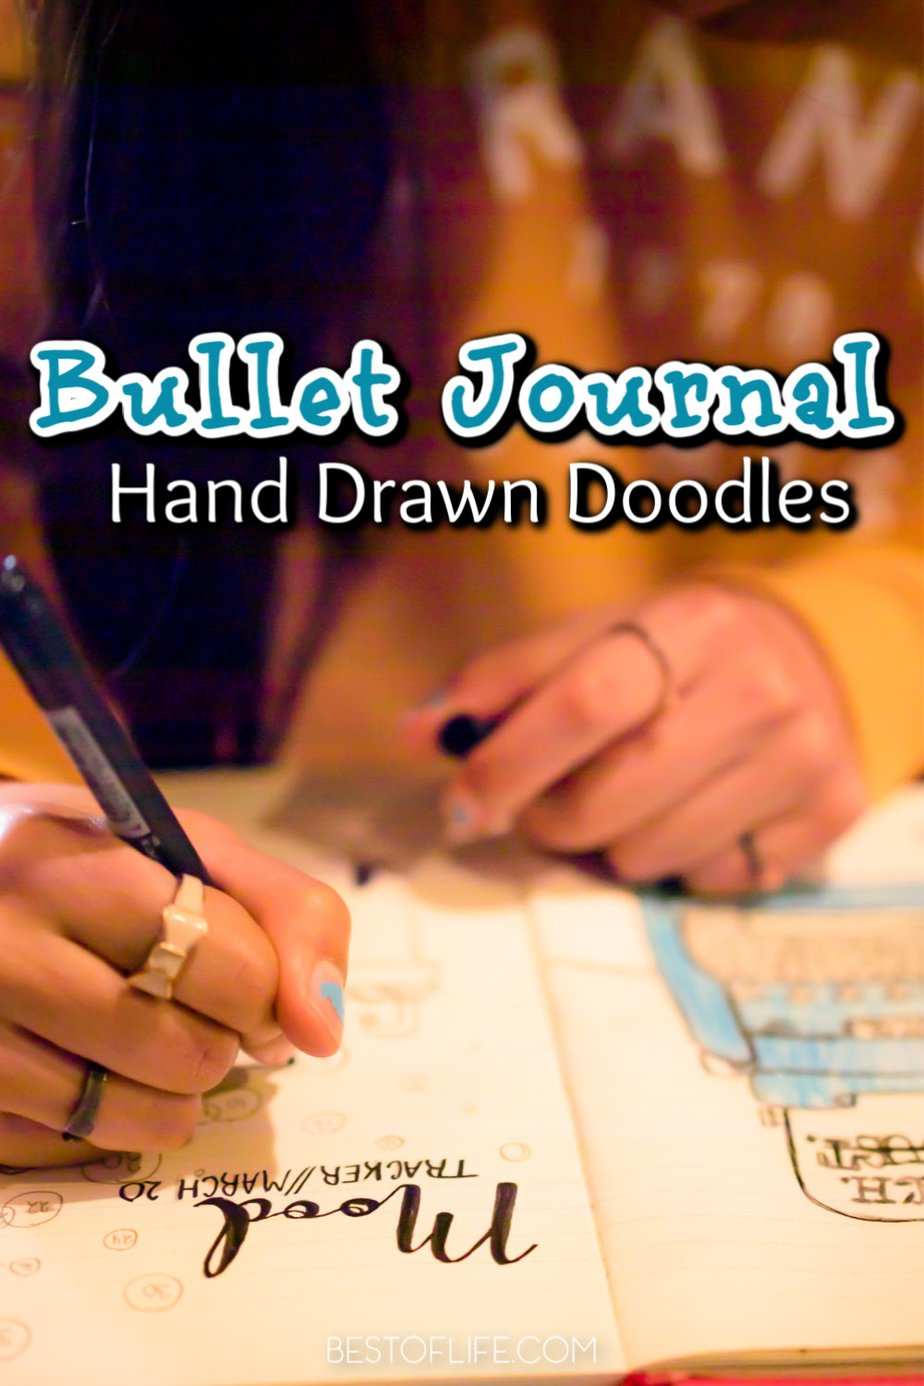 Bullet journal hand drawn doodles are great ways to add personal flair to the book of your life, your day to day, and your goals for the future. Bullet Journal Ideas | Bullet Journal Drawings | Doodles for Bullet Journals | Life Organization Tips #bulletjournal #doodles via @thebestoflife